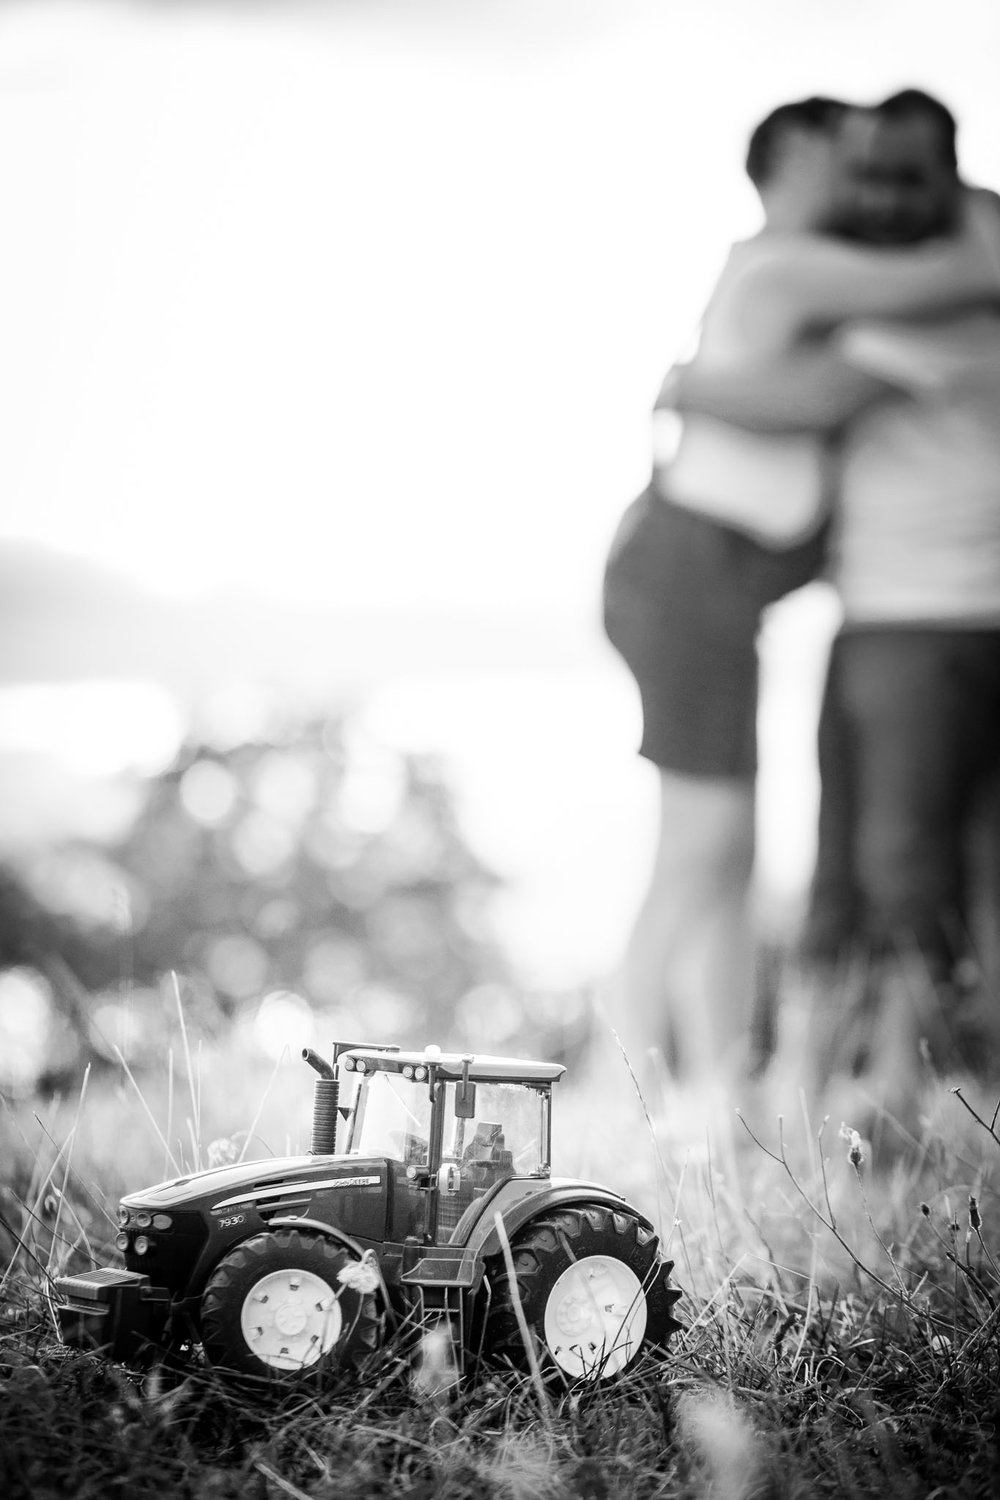 grossesse-femme-enceinte-couple-nature-campagne-ingold-photographe-101.jpg